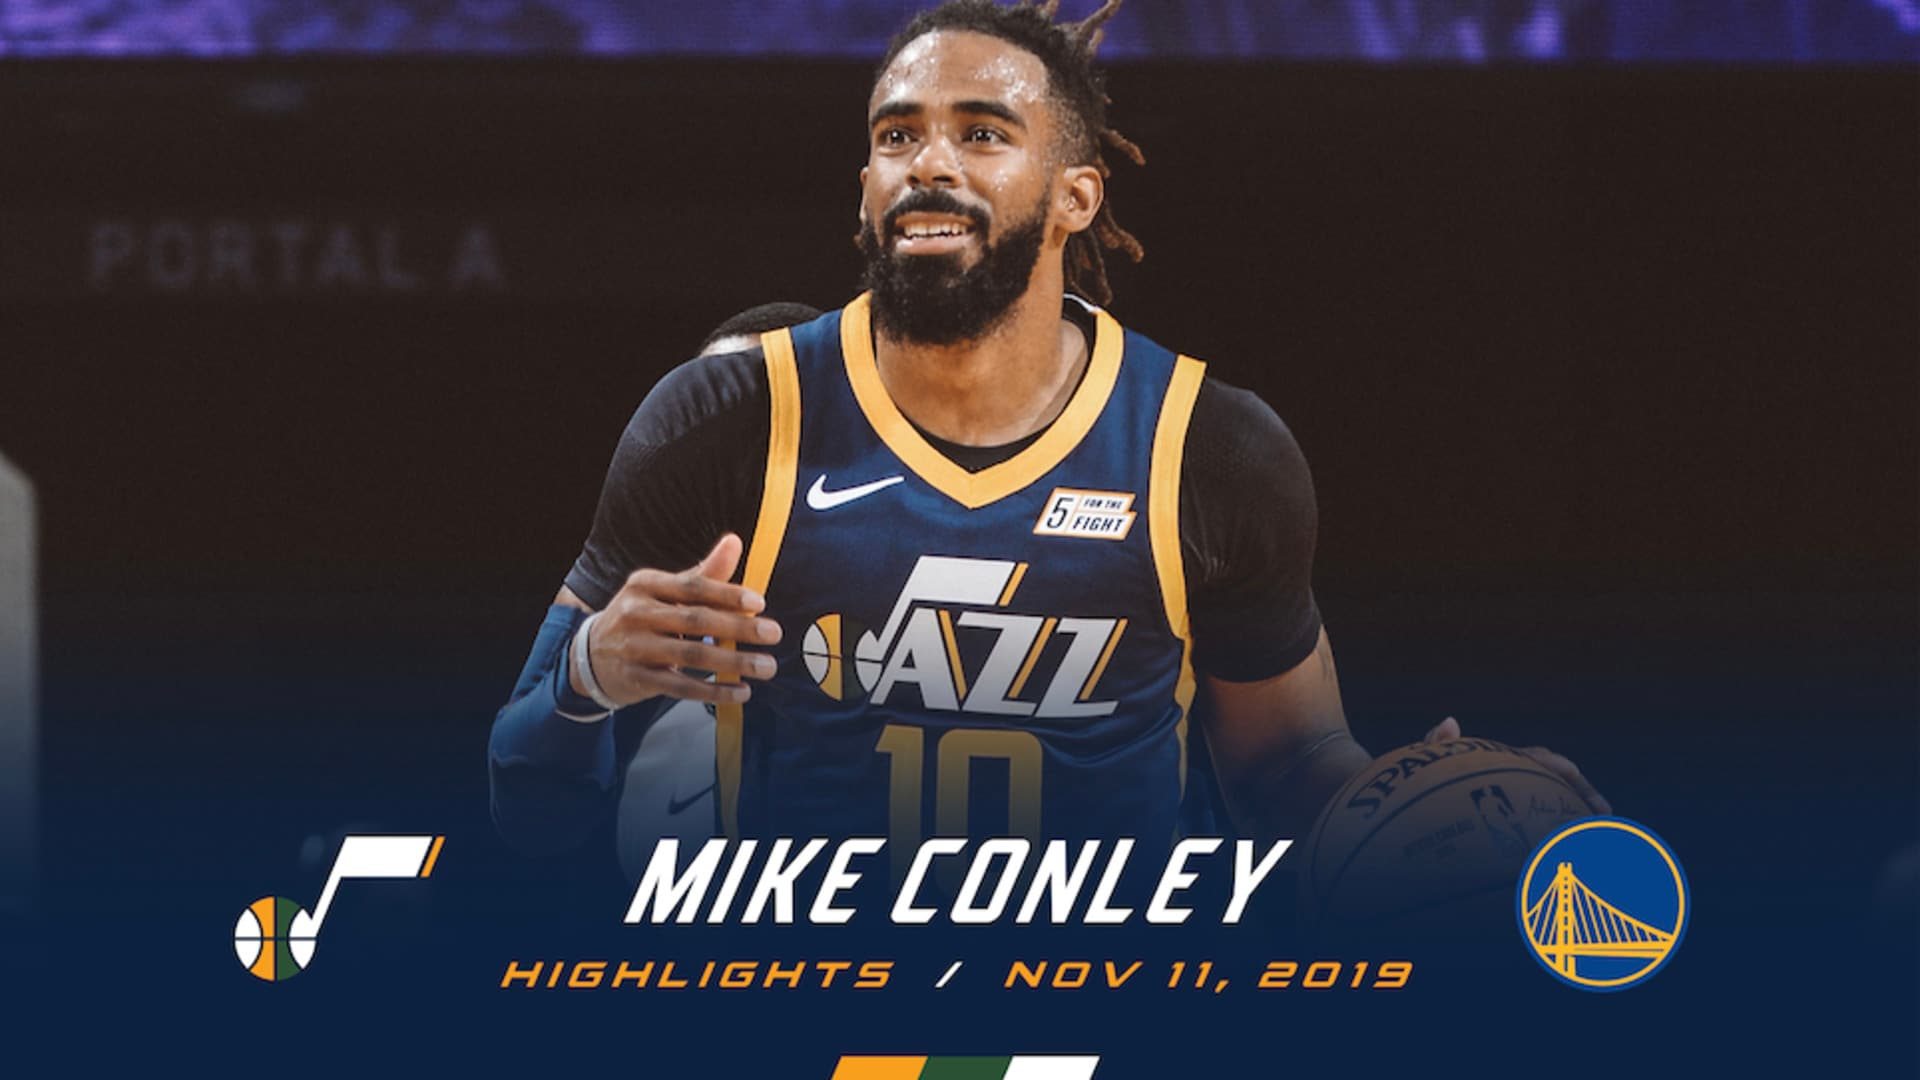 Highlights: Mike Conley - 22 points, 7 assists